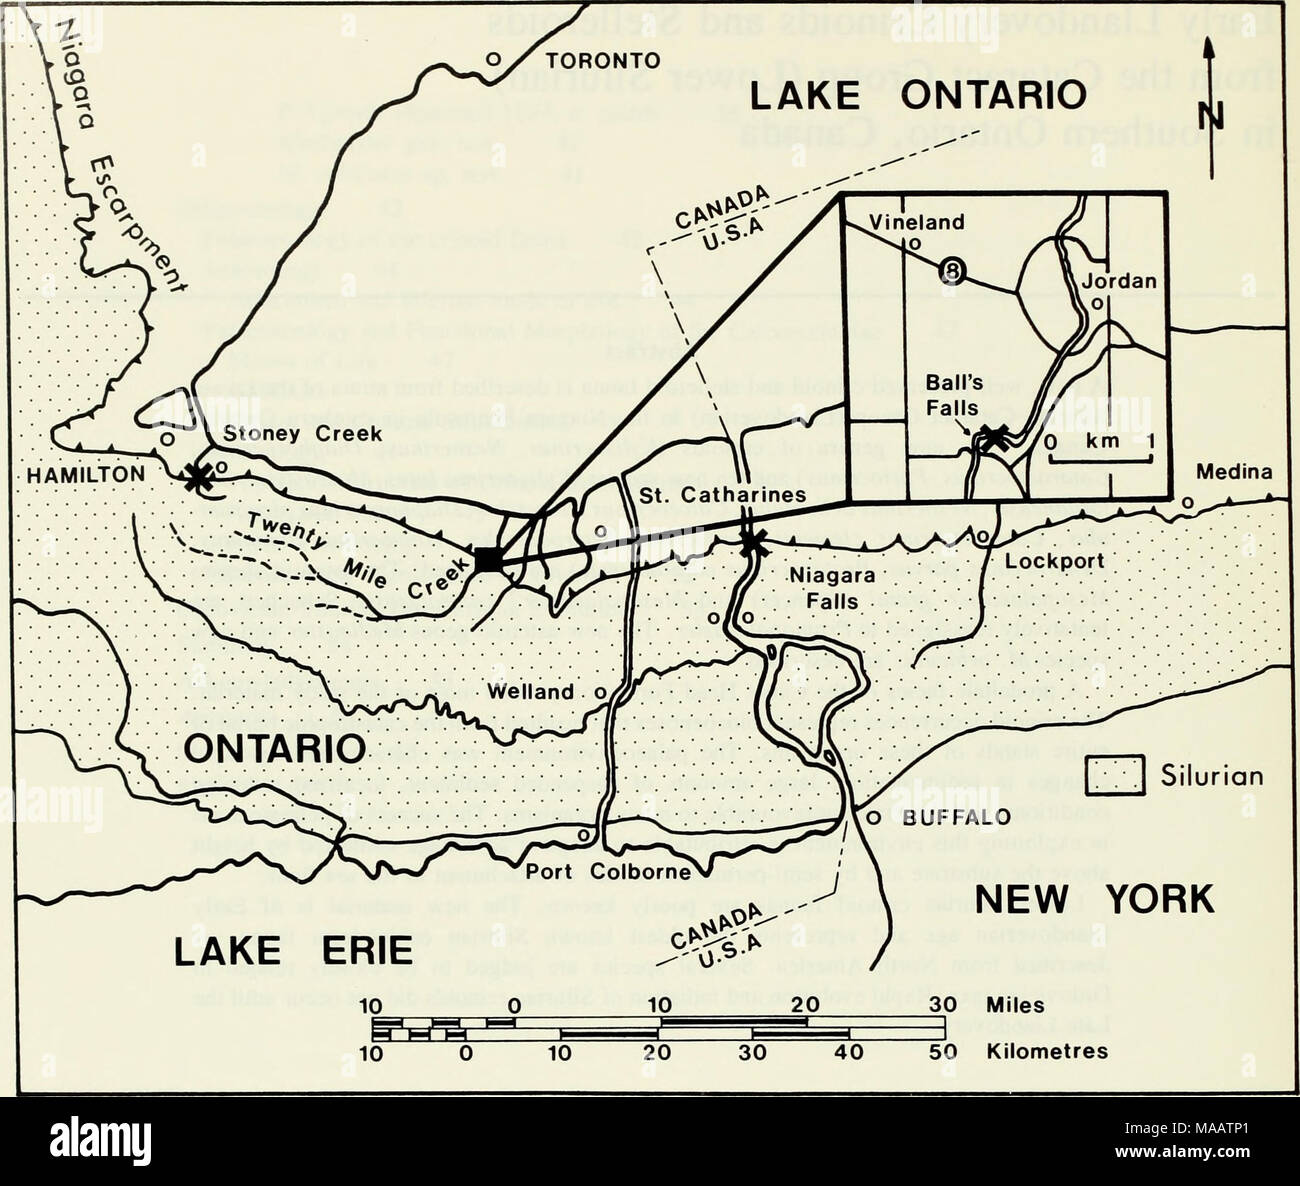 . Early Llandovery crinoids and stelleroids from the Cataract Group (Lower Silurian) in southern Ontario, Canada . Text-fig. 1 Locality map of southwestern Ontario and western New York State showing occurrences (x) of echinoderms in the Cataract Group. Twelve Mile Creek. Brower (1966) described Calceocri- nus pustulosus from the Manitoulin Formation at Stoney Creek. Brett (1978a) described Ptychocrinus medinensis from the lower Medina Group in the Niagara Gorge near Lewiston in New York State. Materials and Methods A complete section of the Cabot Head Formation is exposed in the gorge below th Stock Photo